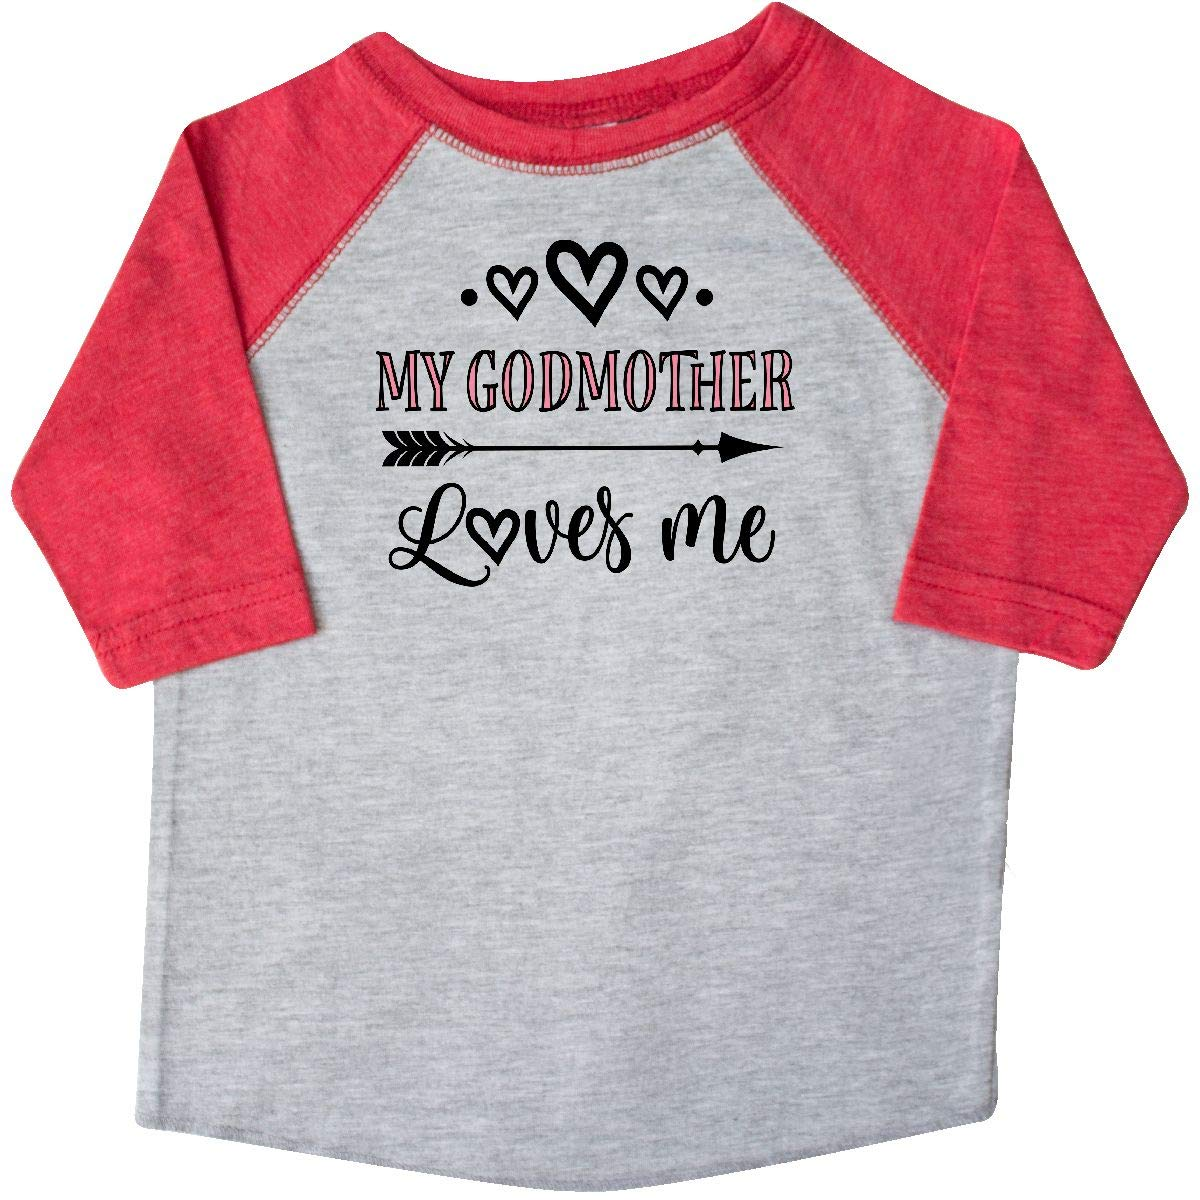 inktastic My Godmother Loves Me Girls Toddler T-Shirt